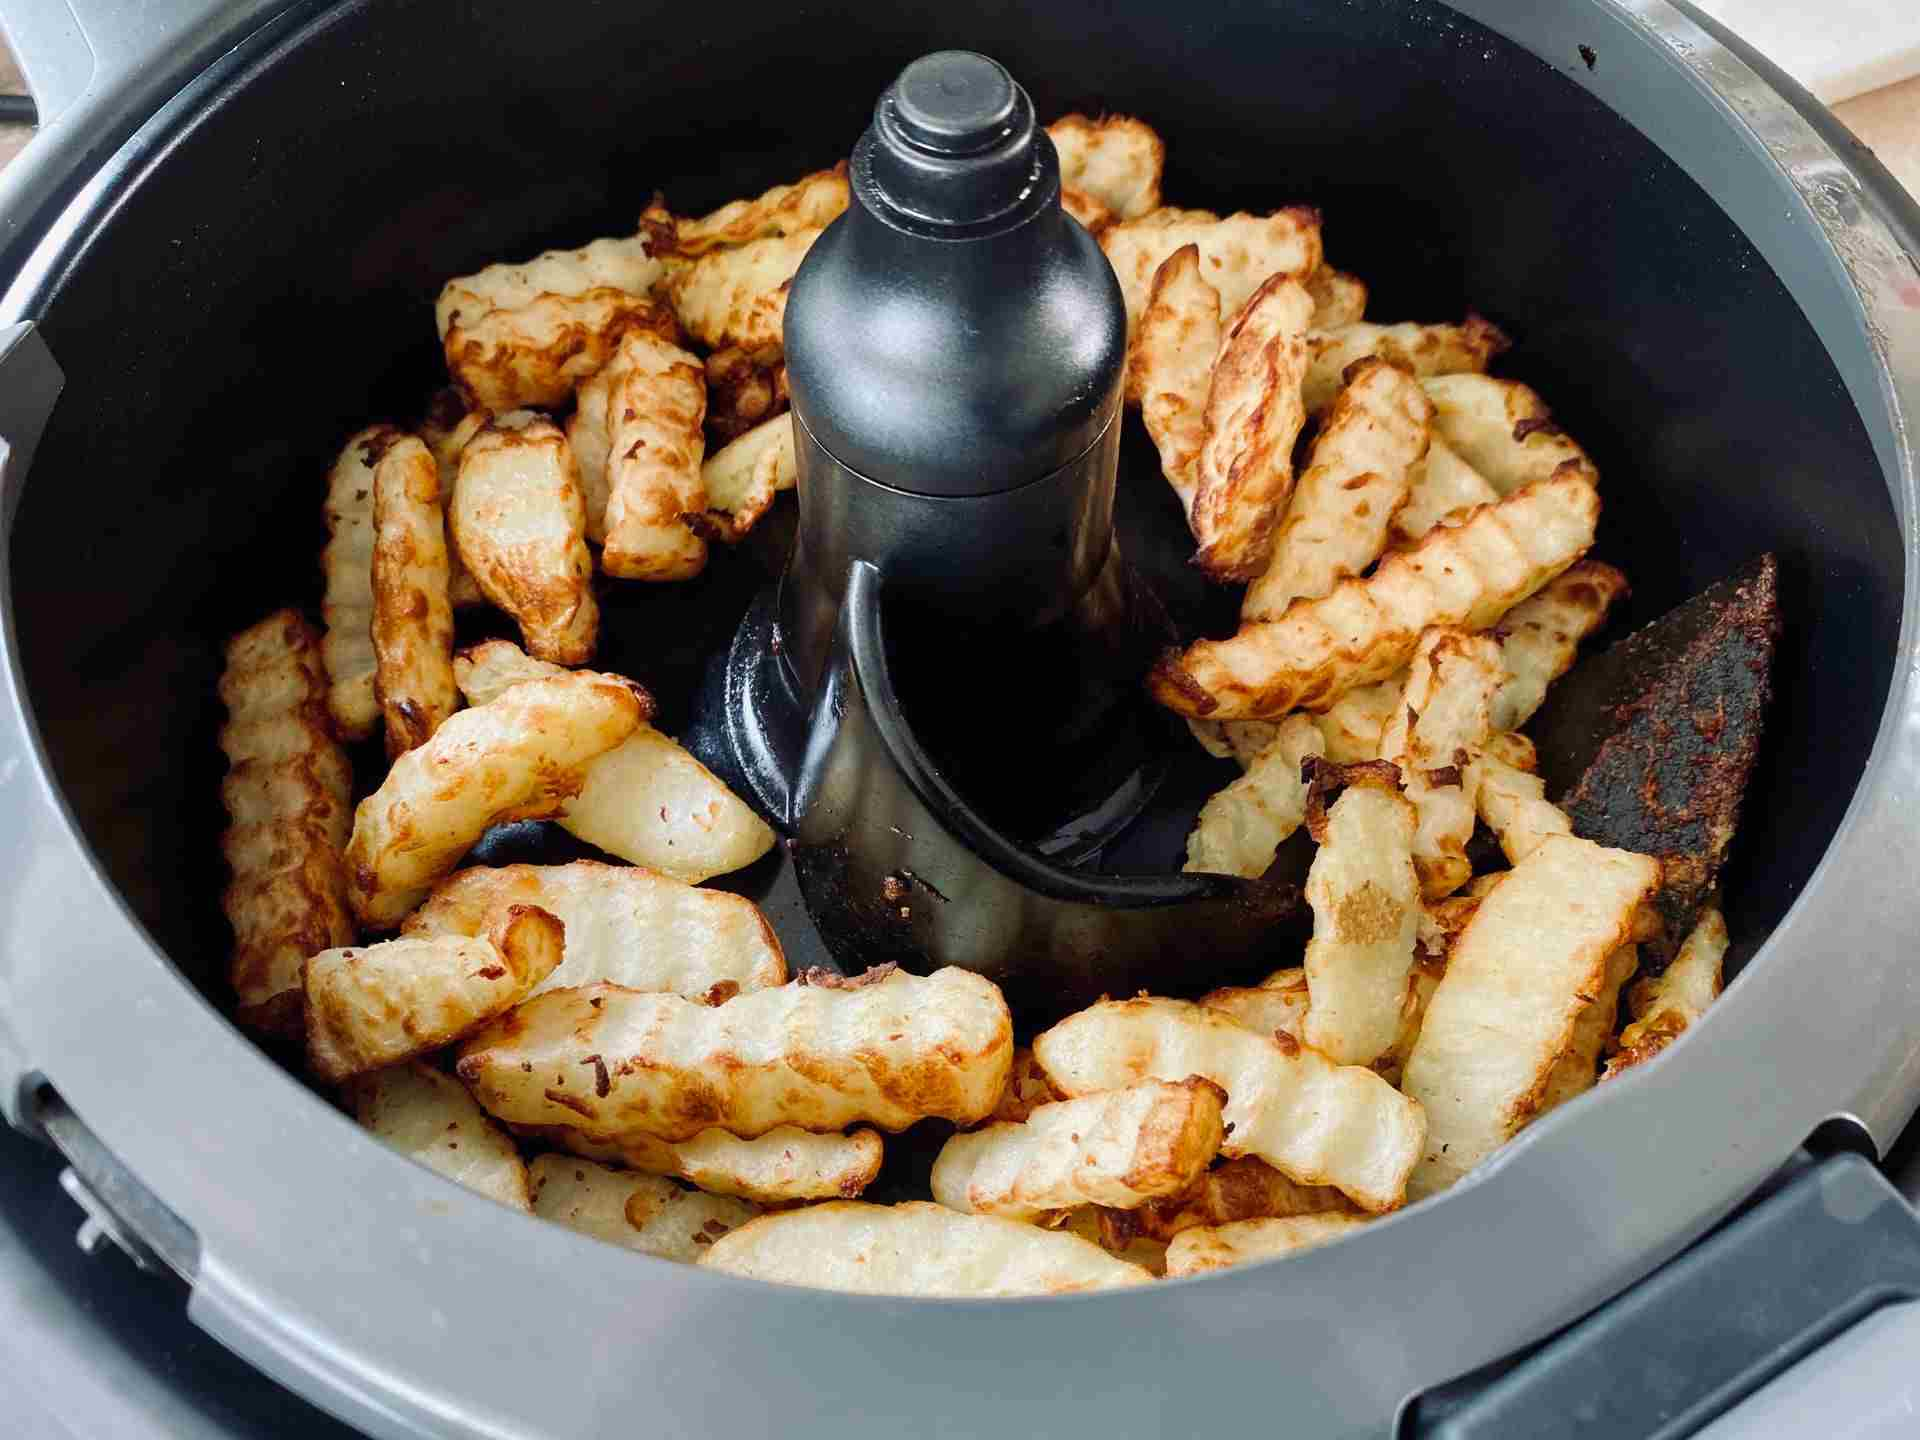 Best Air Fryer Under 5000 In India